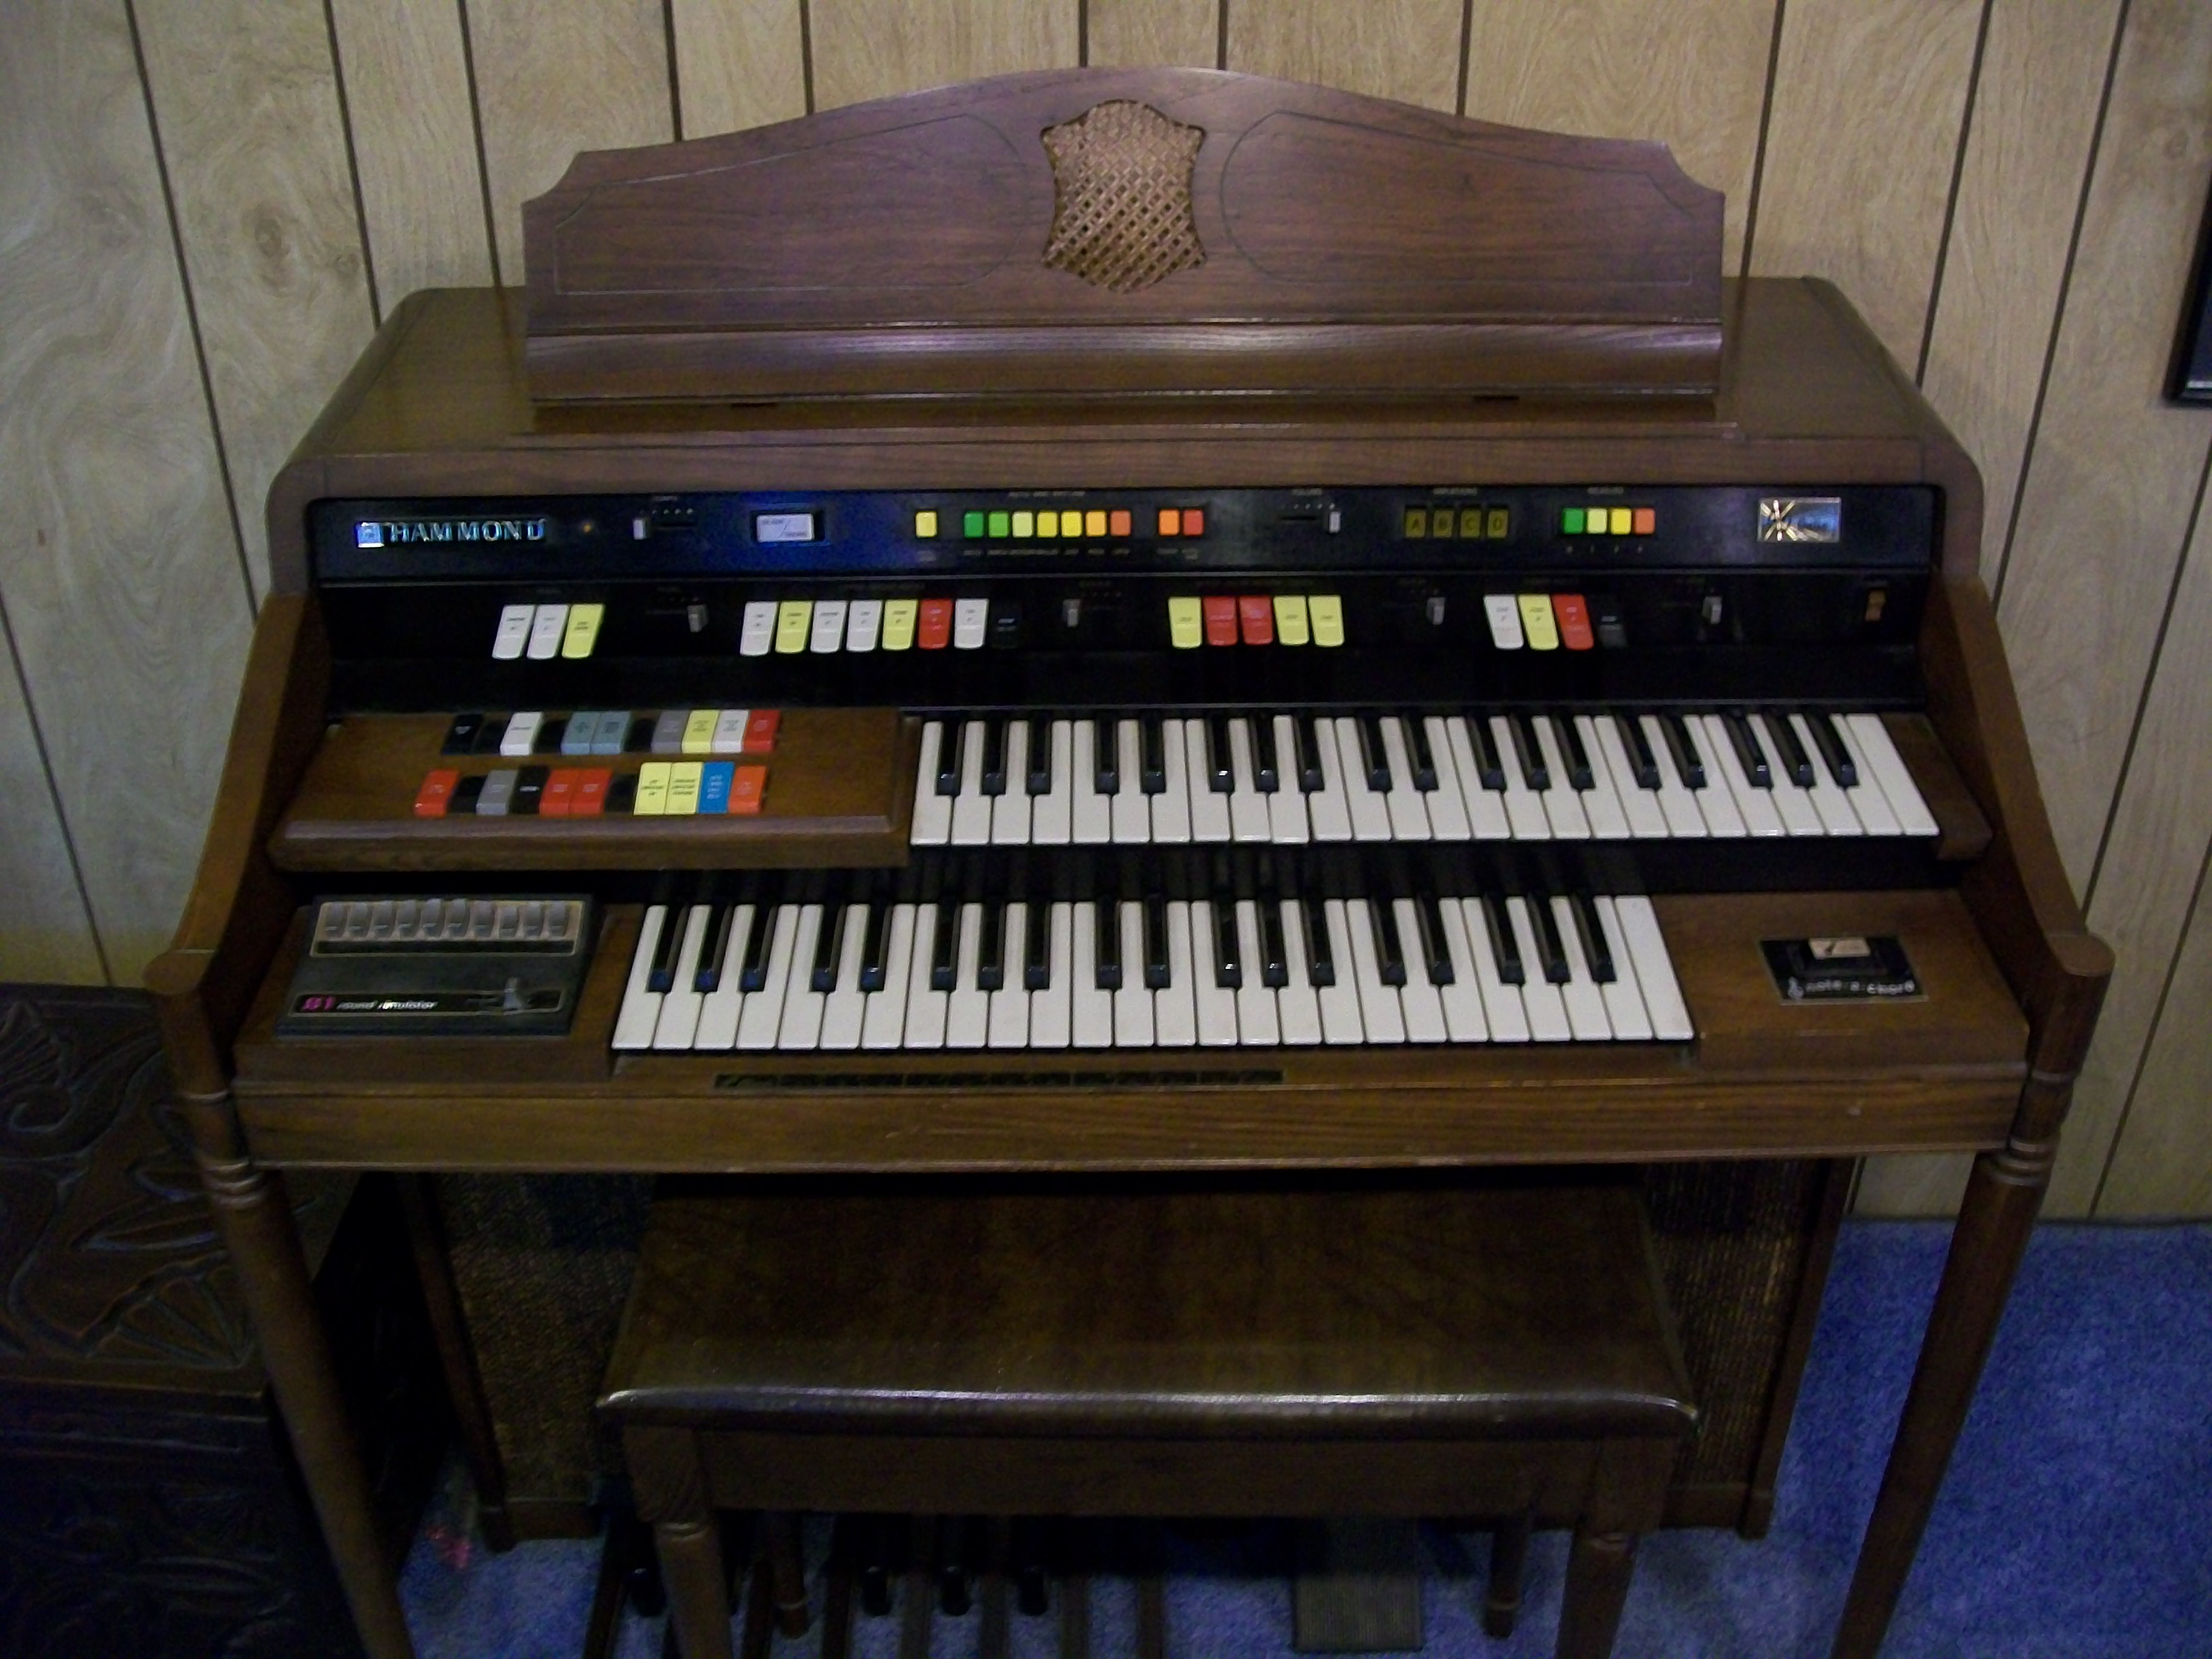 I donate a Hammond Organ model 126114 with Leslie and bench